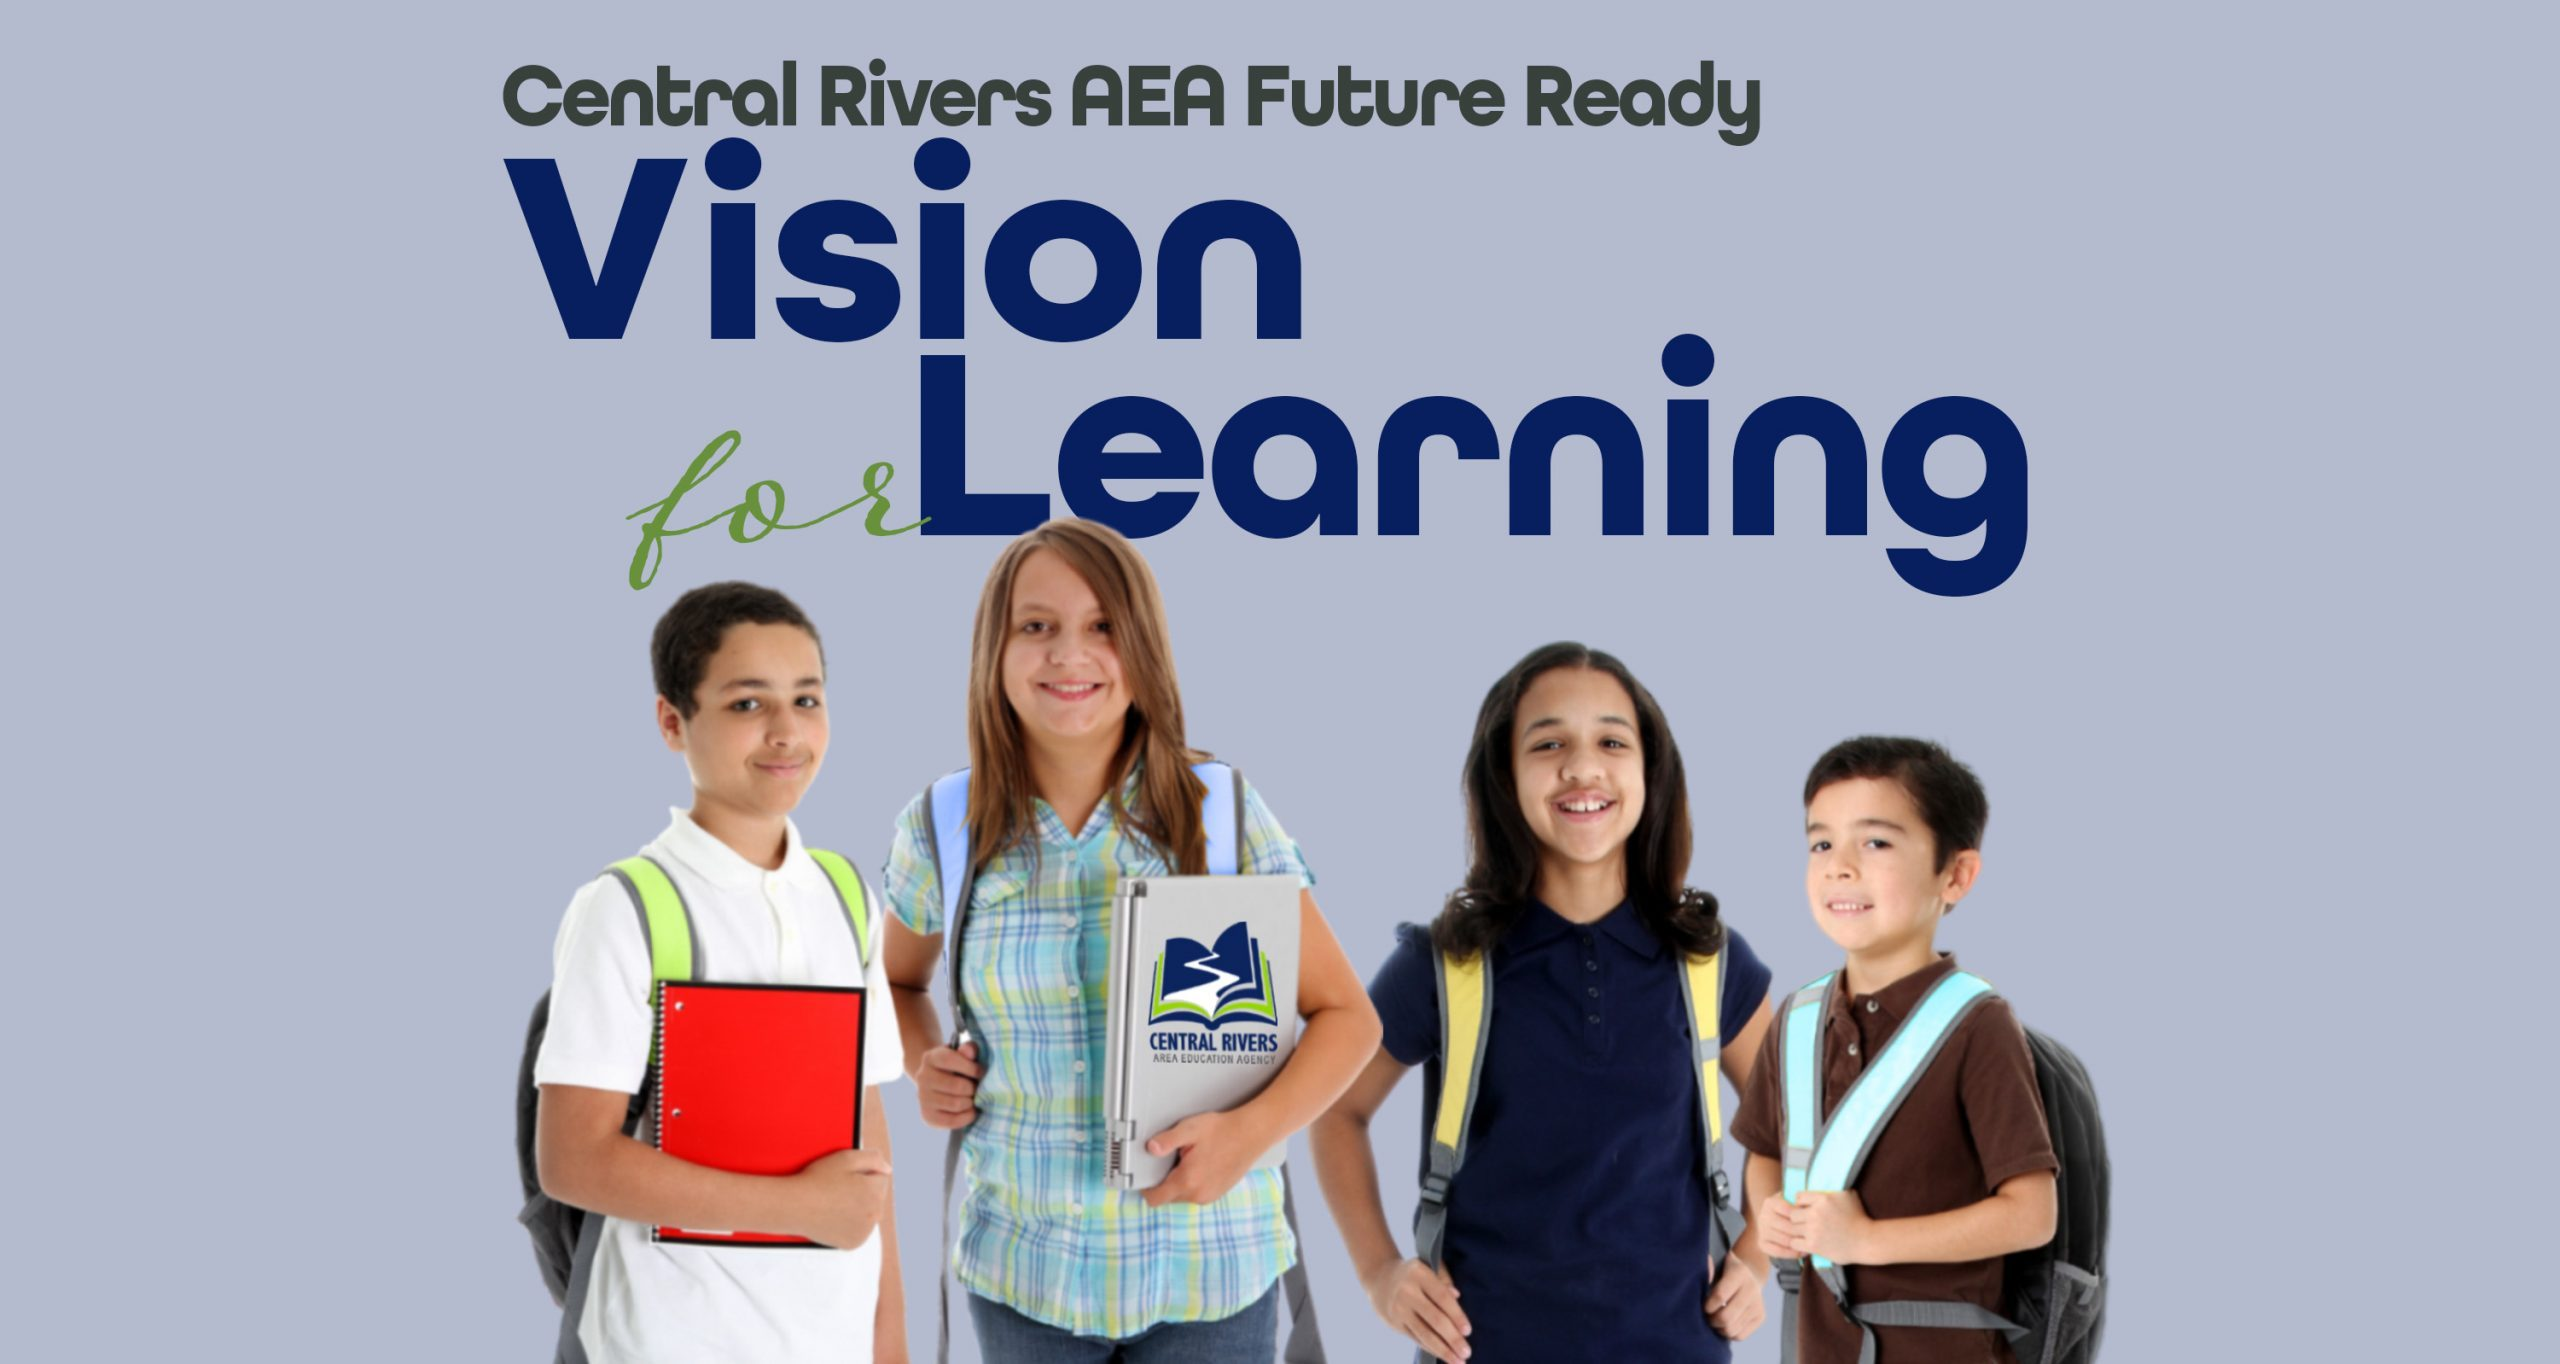 Central Rivers AEA Future Ready: Vision for learning